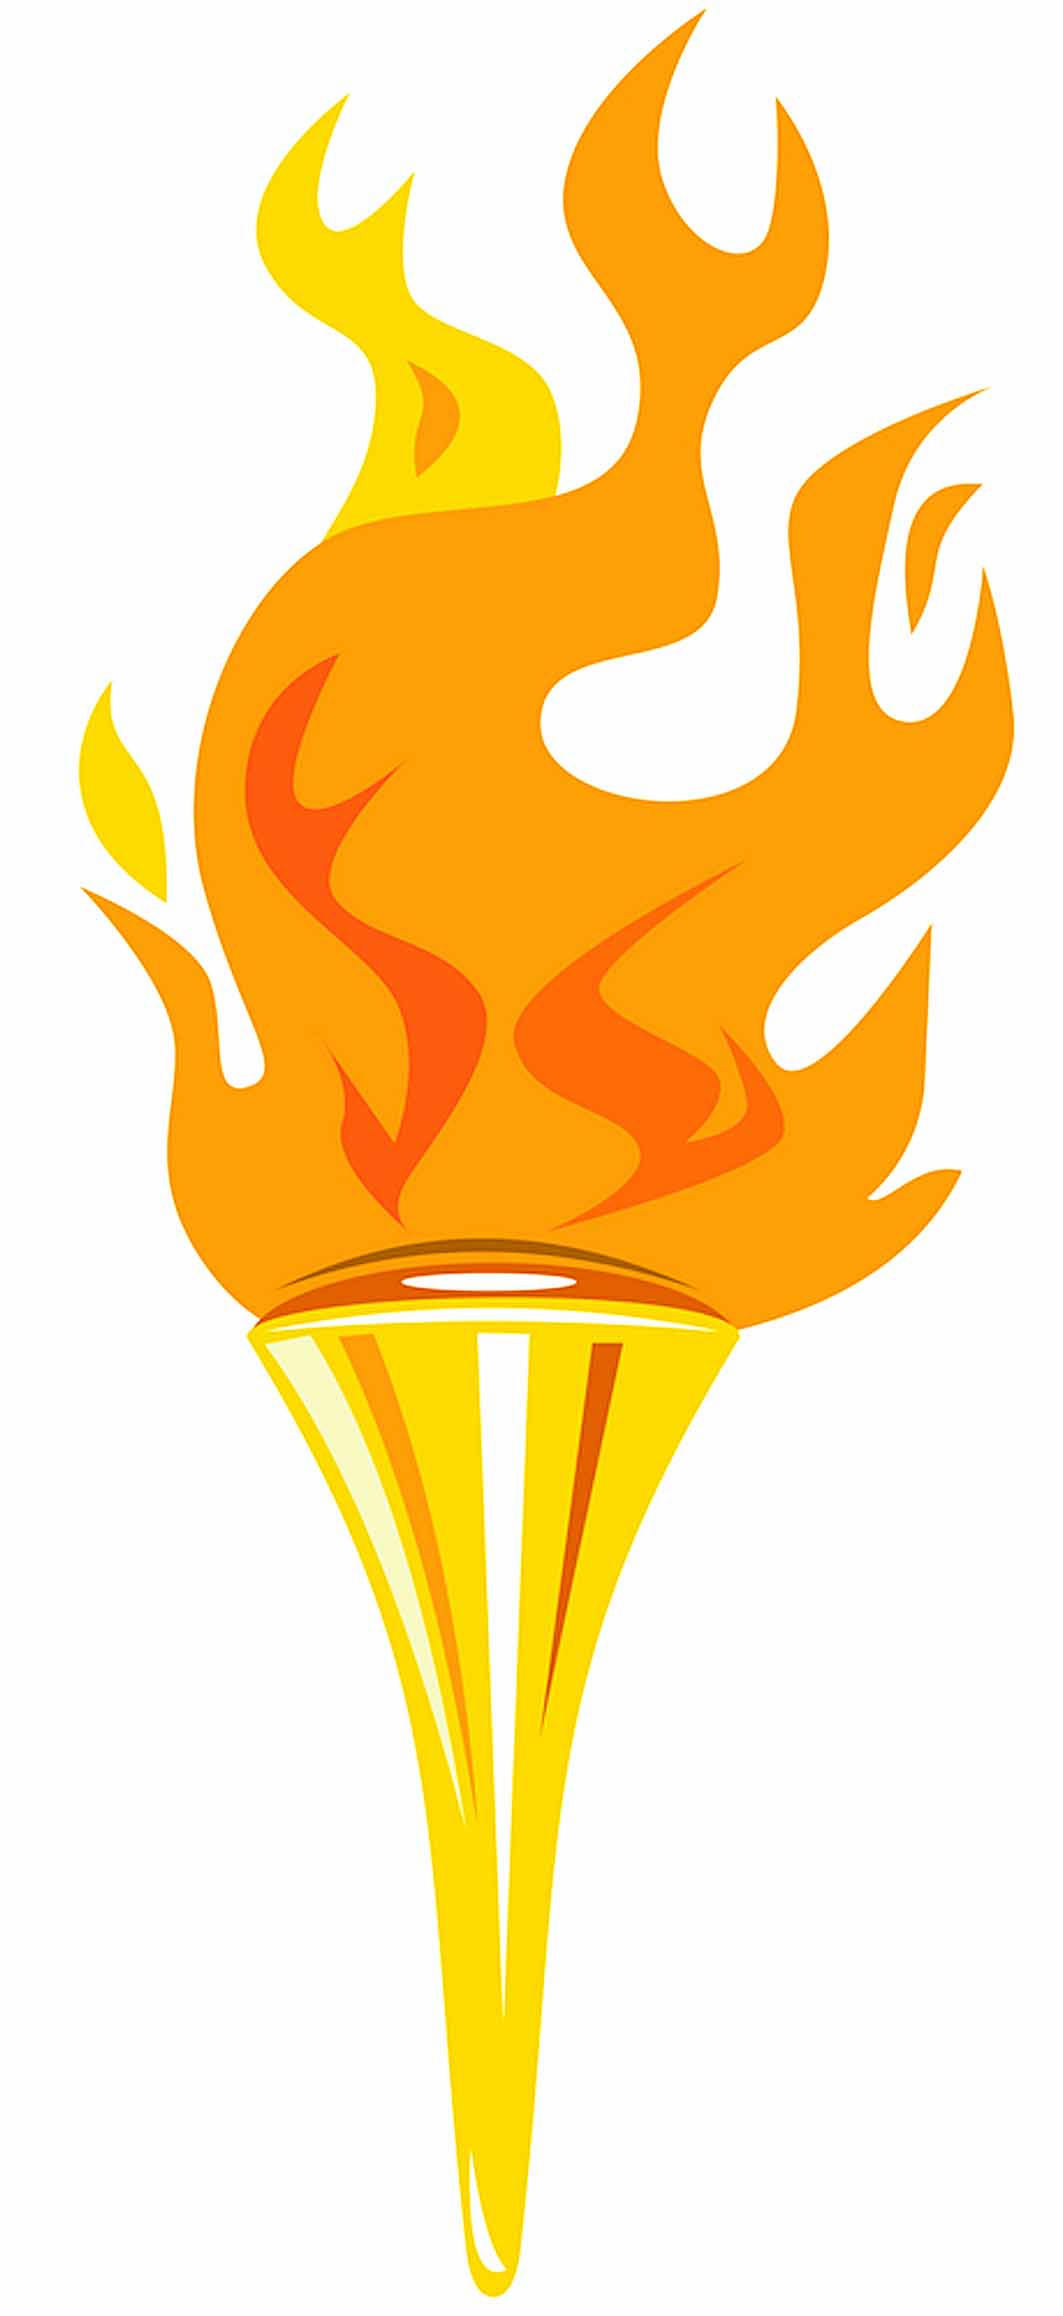 Flaming torch clipart clip art freeuse download Flaming torch clipart - ClipartFest clip art freeuse download